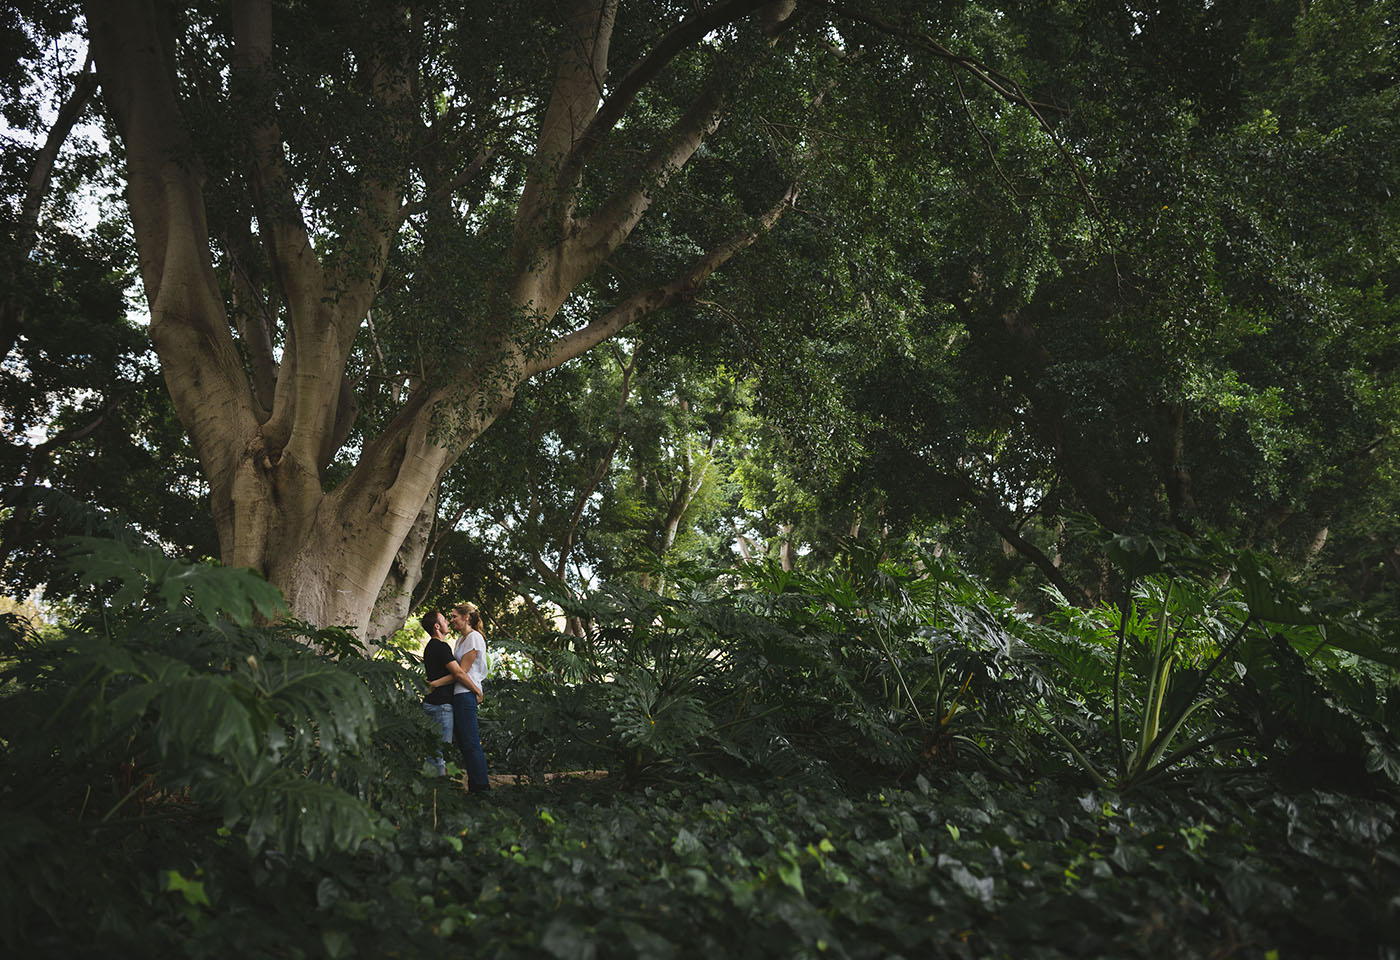 Landscape image of couple in a park